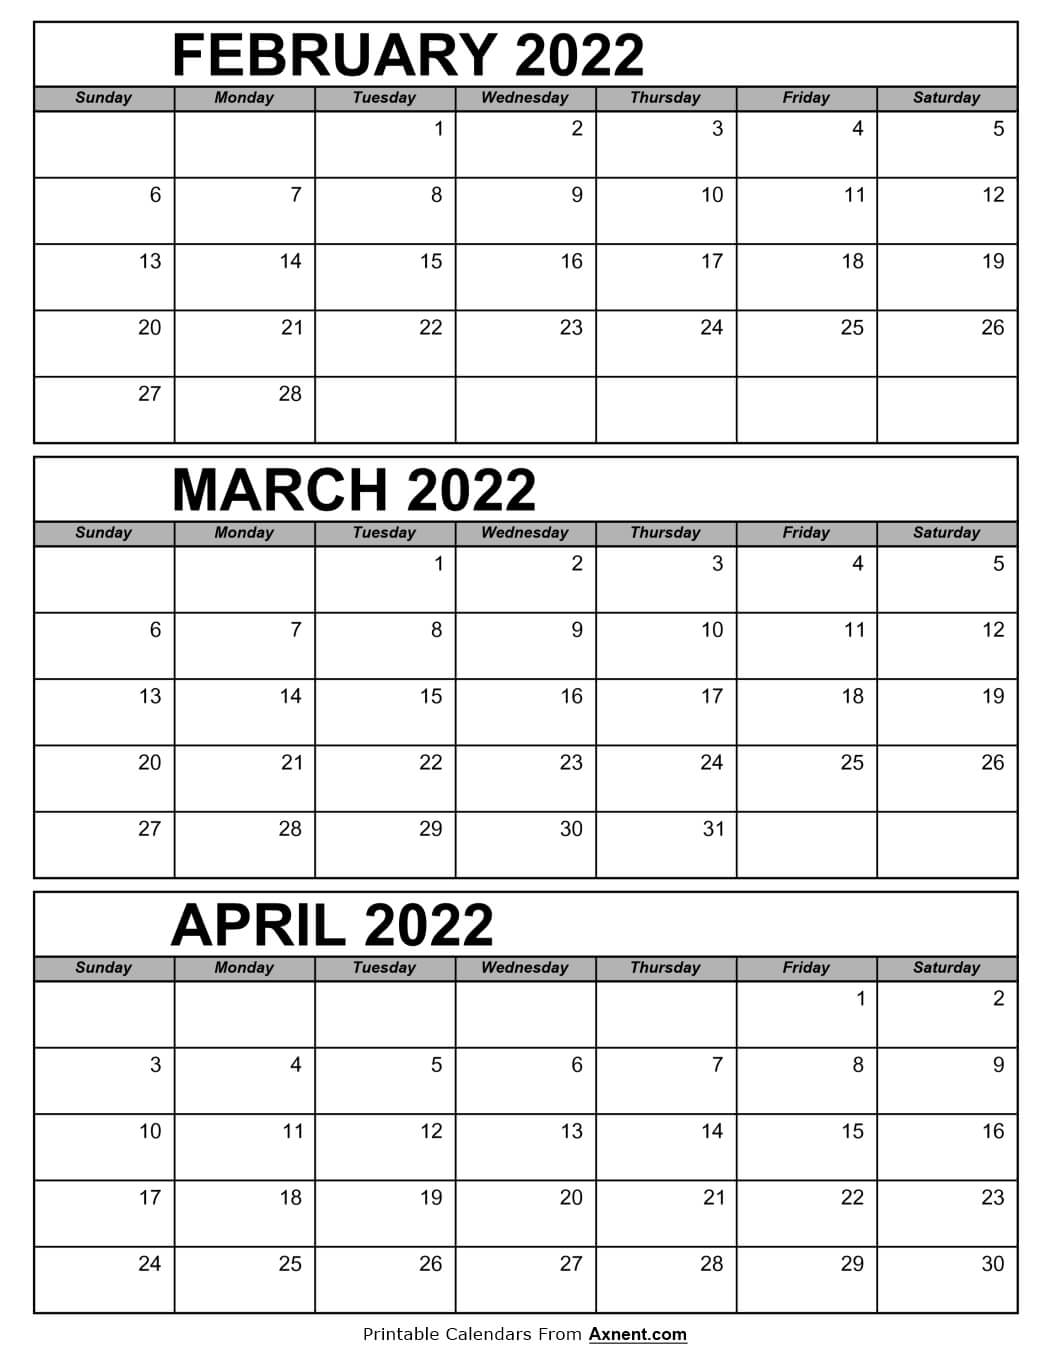 February March and April Calendar 2022